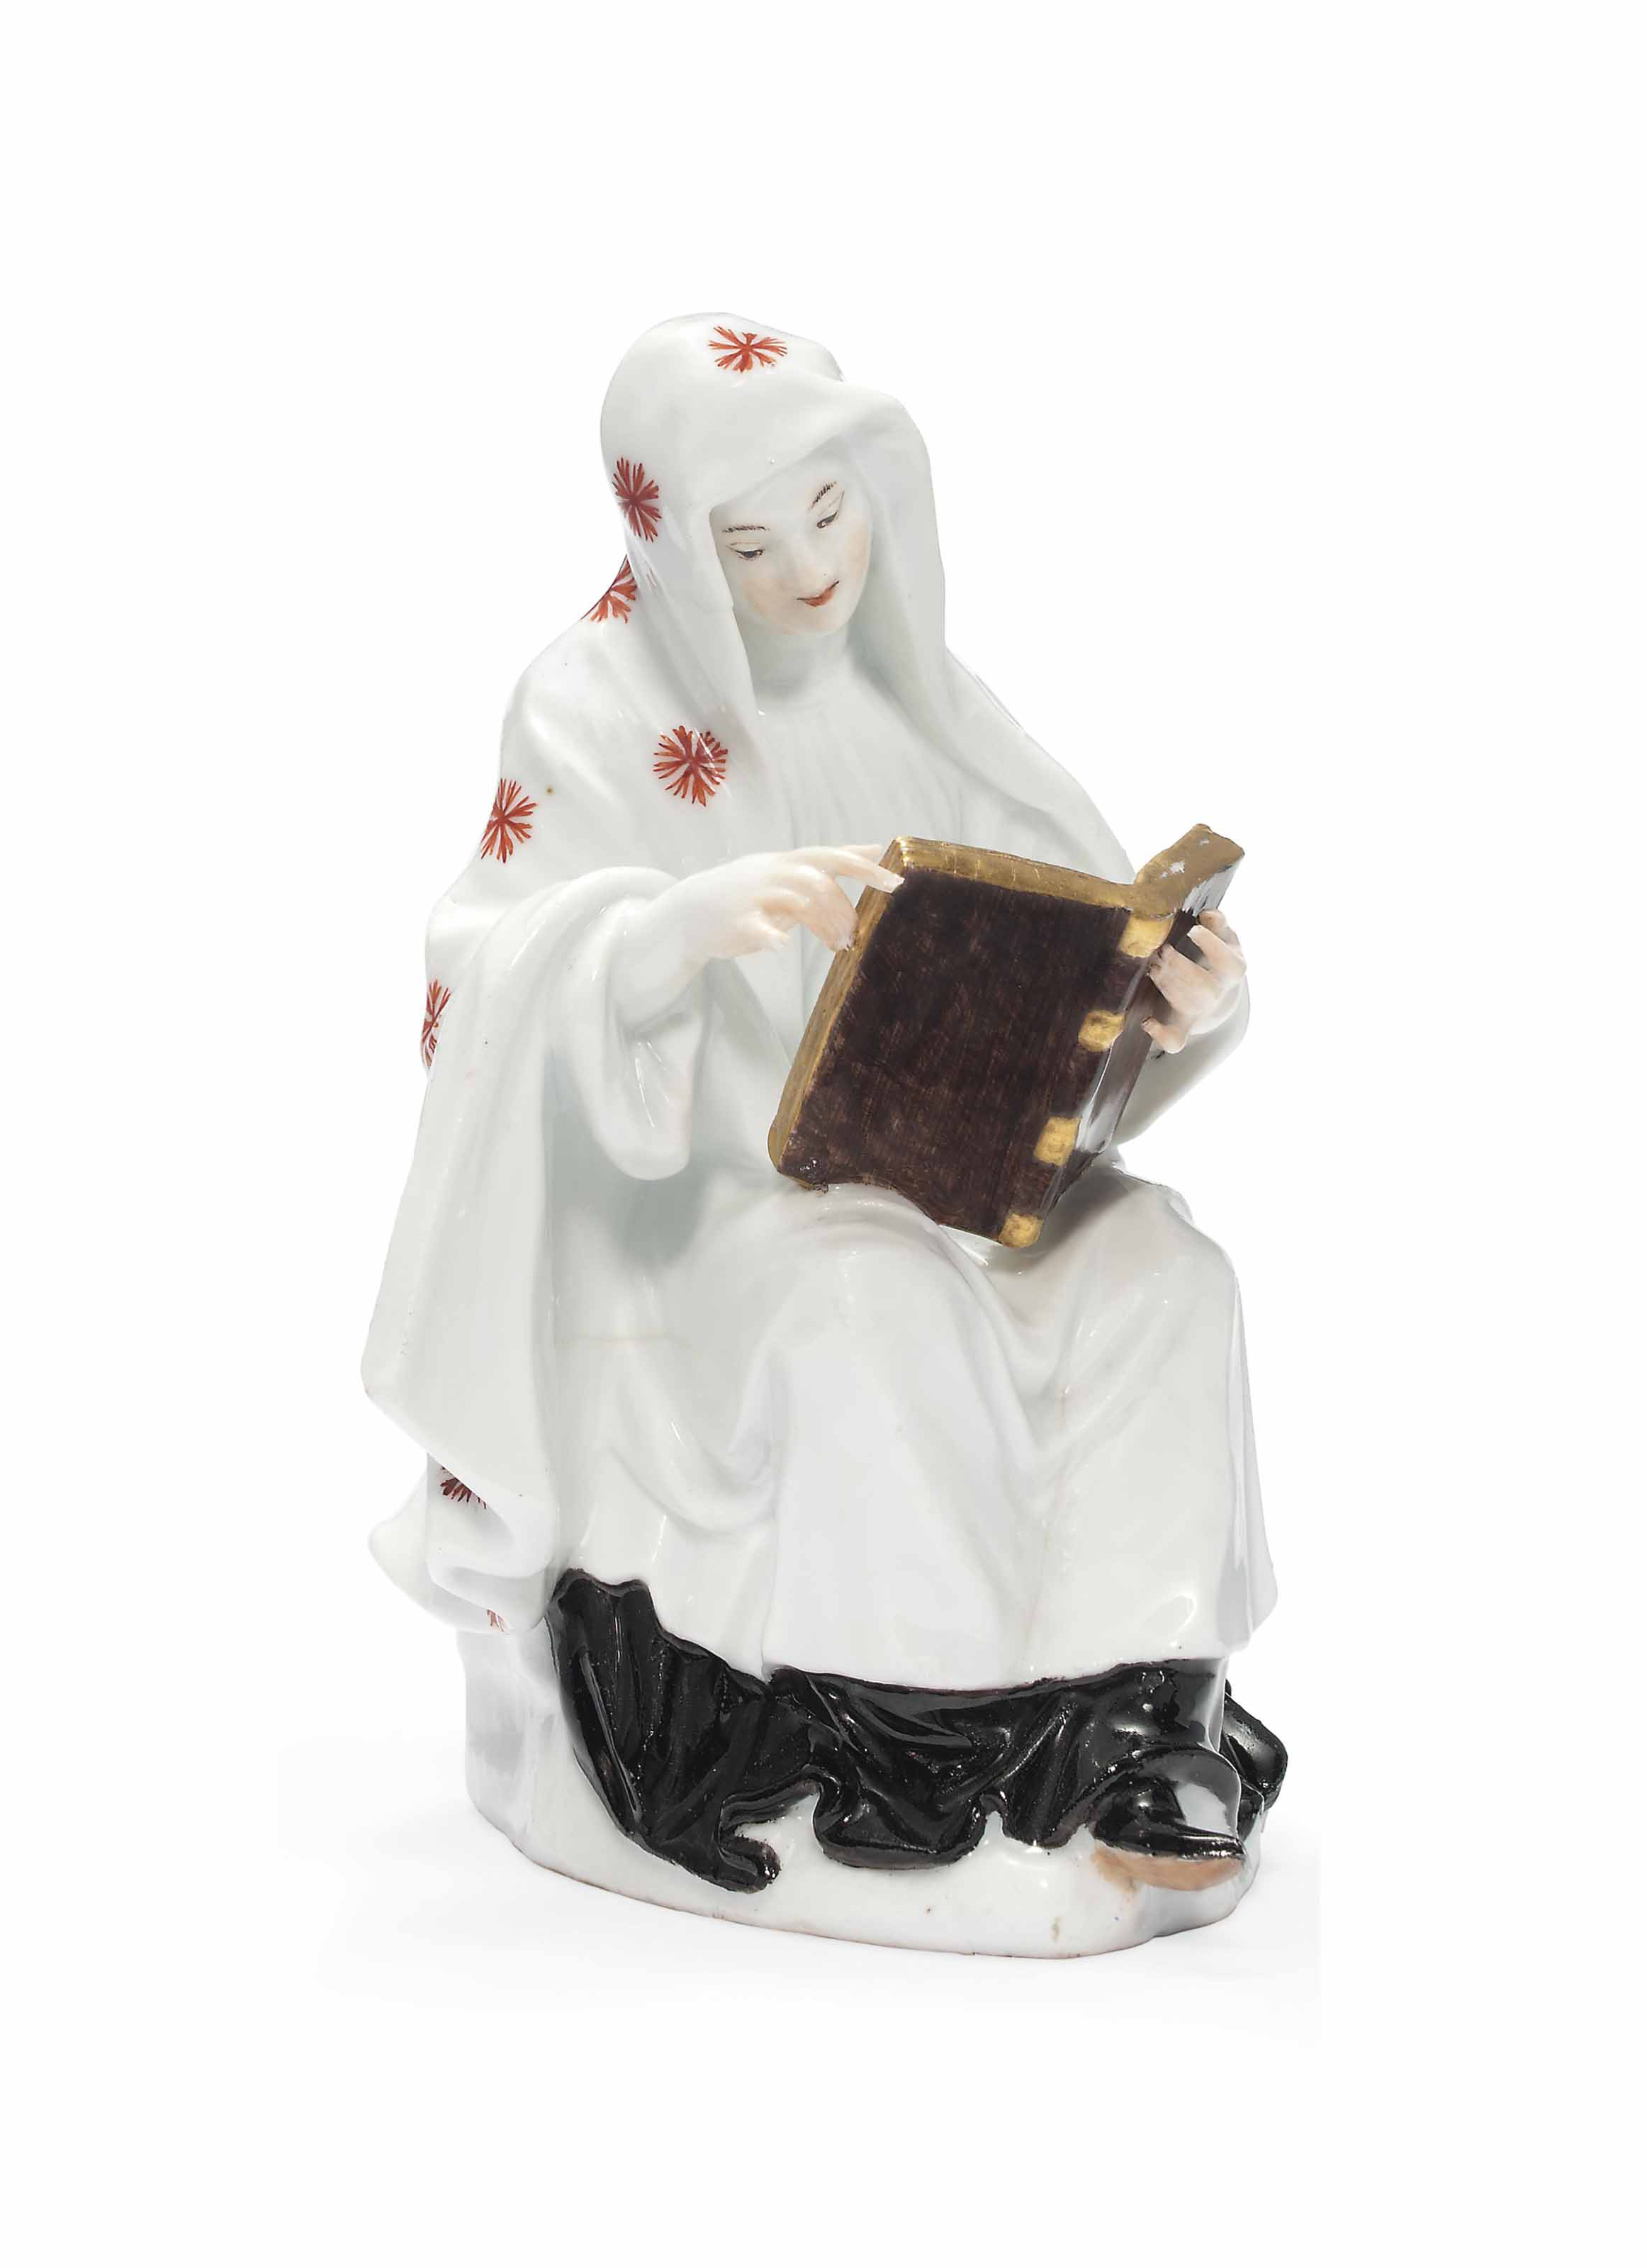 A MEISSEN FIGURE OF A NUN